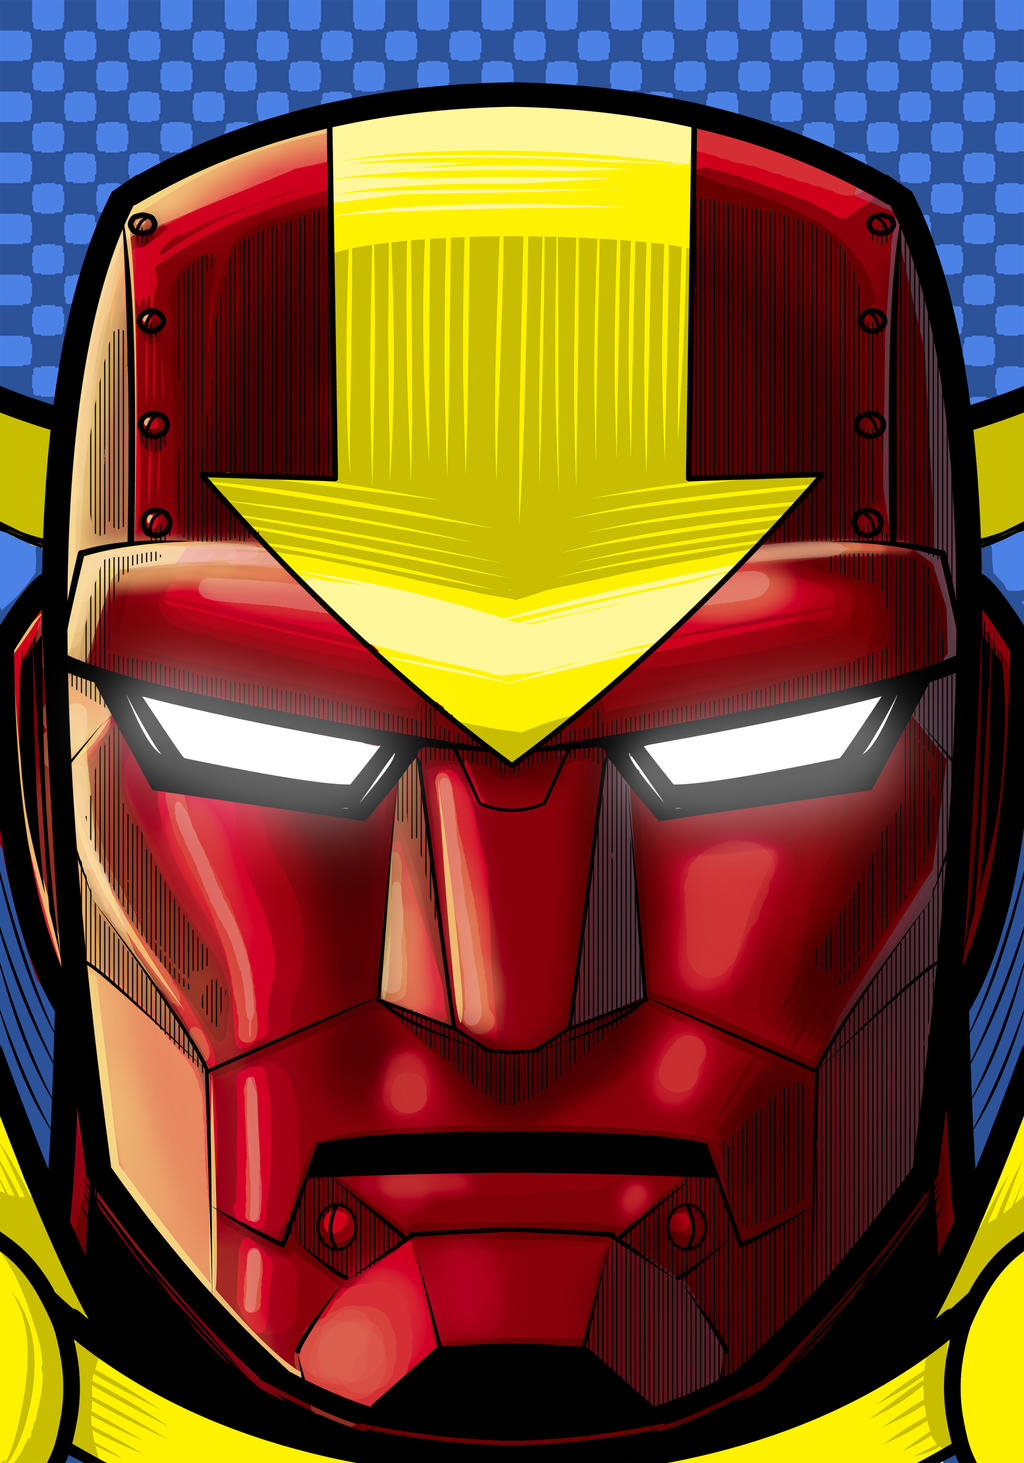 Red Tornado Headshot by Thuddleston